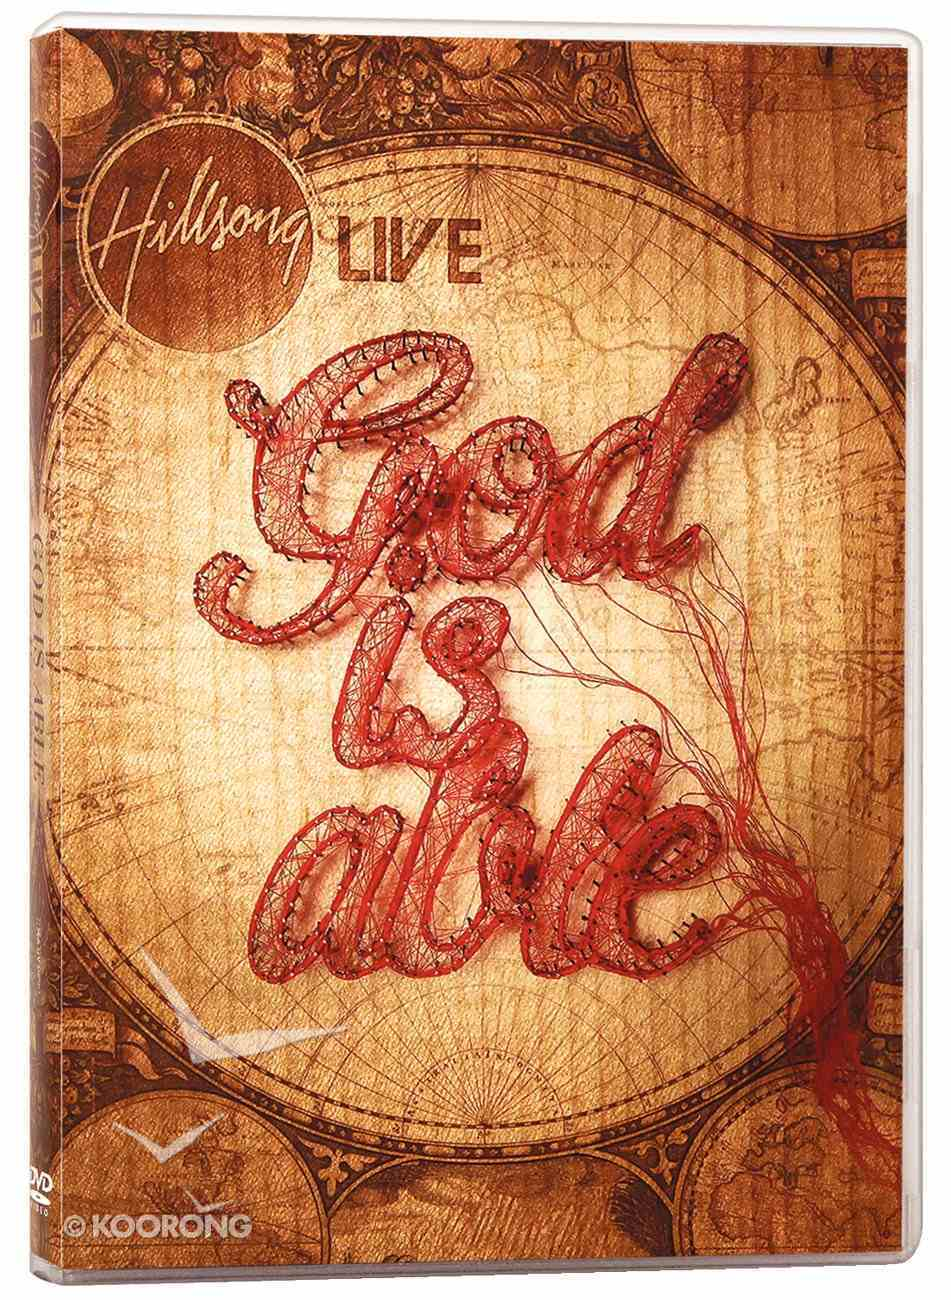 2011 God is Able DVD